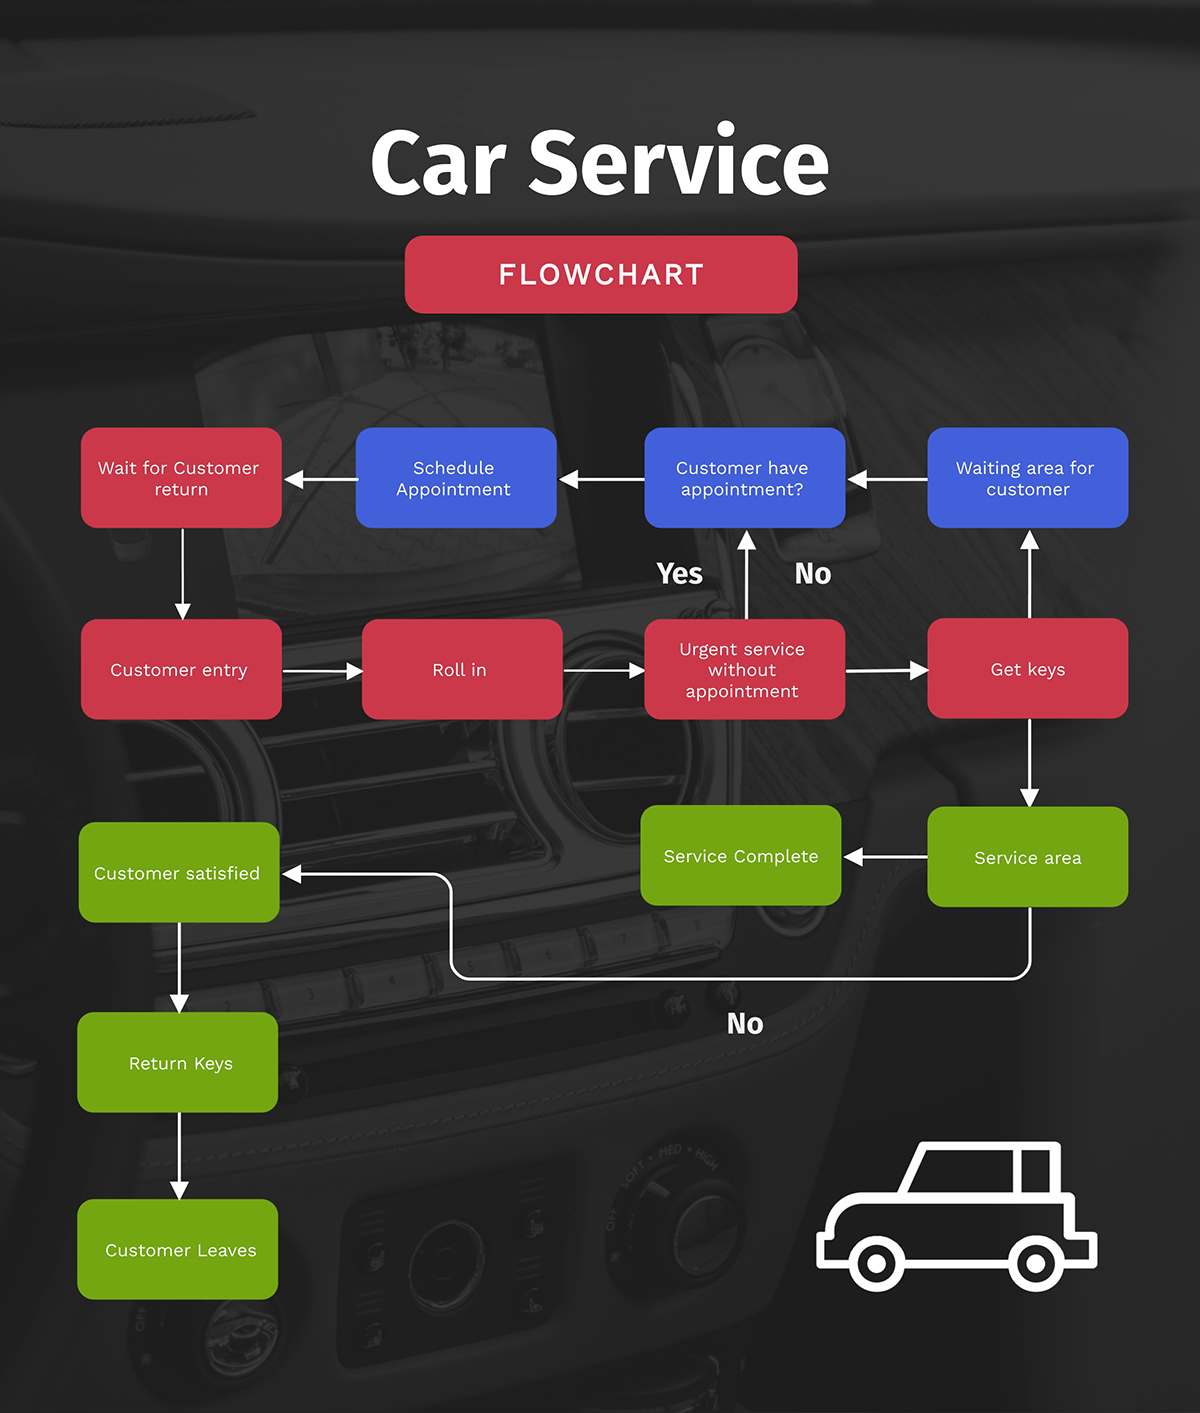 A car service process flowchart template available to customize in Visme.